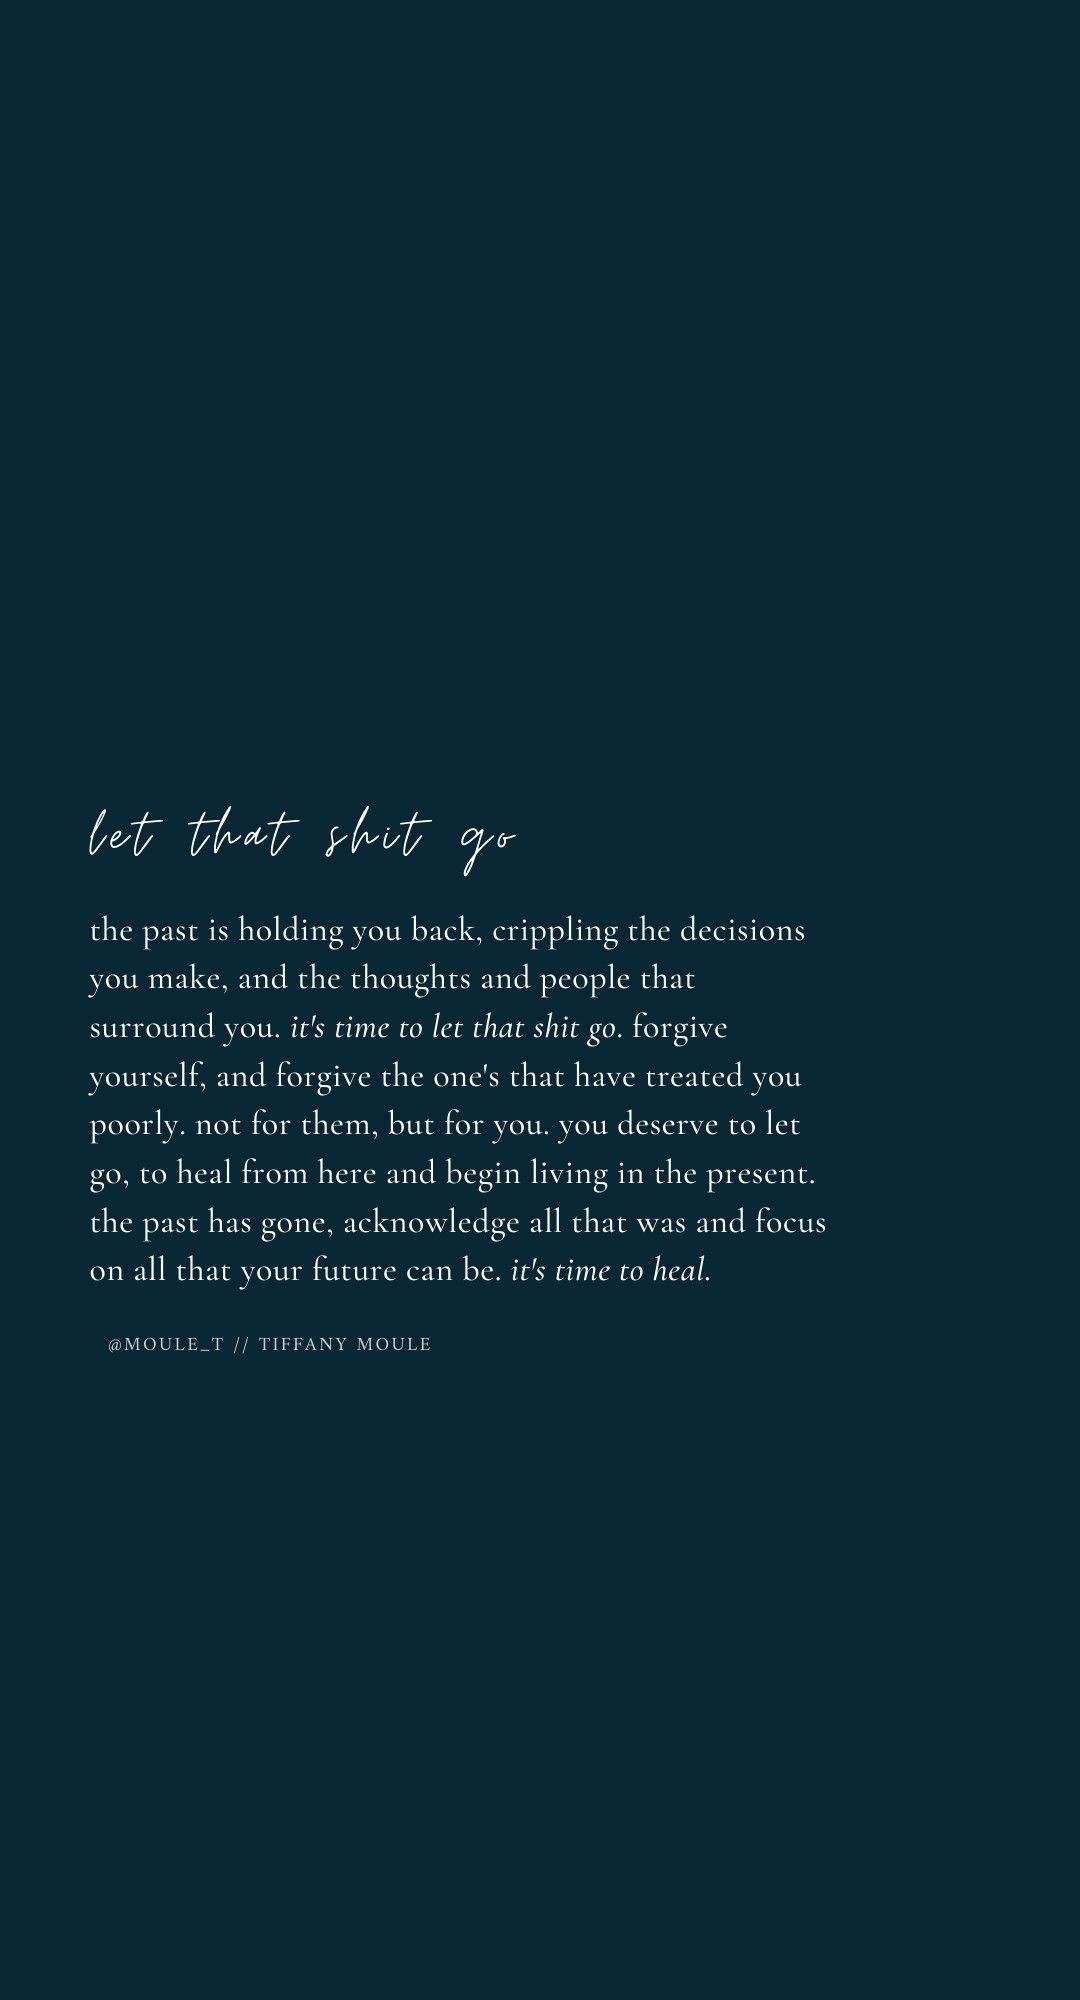 Let that shit go #heal #grow | growth quote | self care